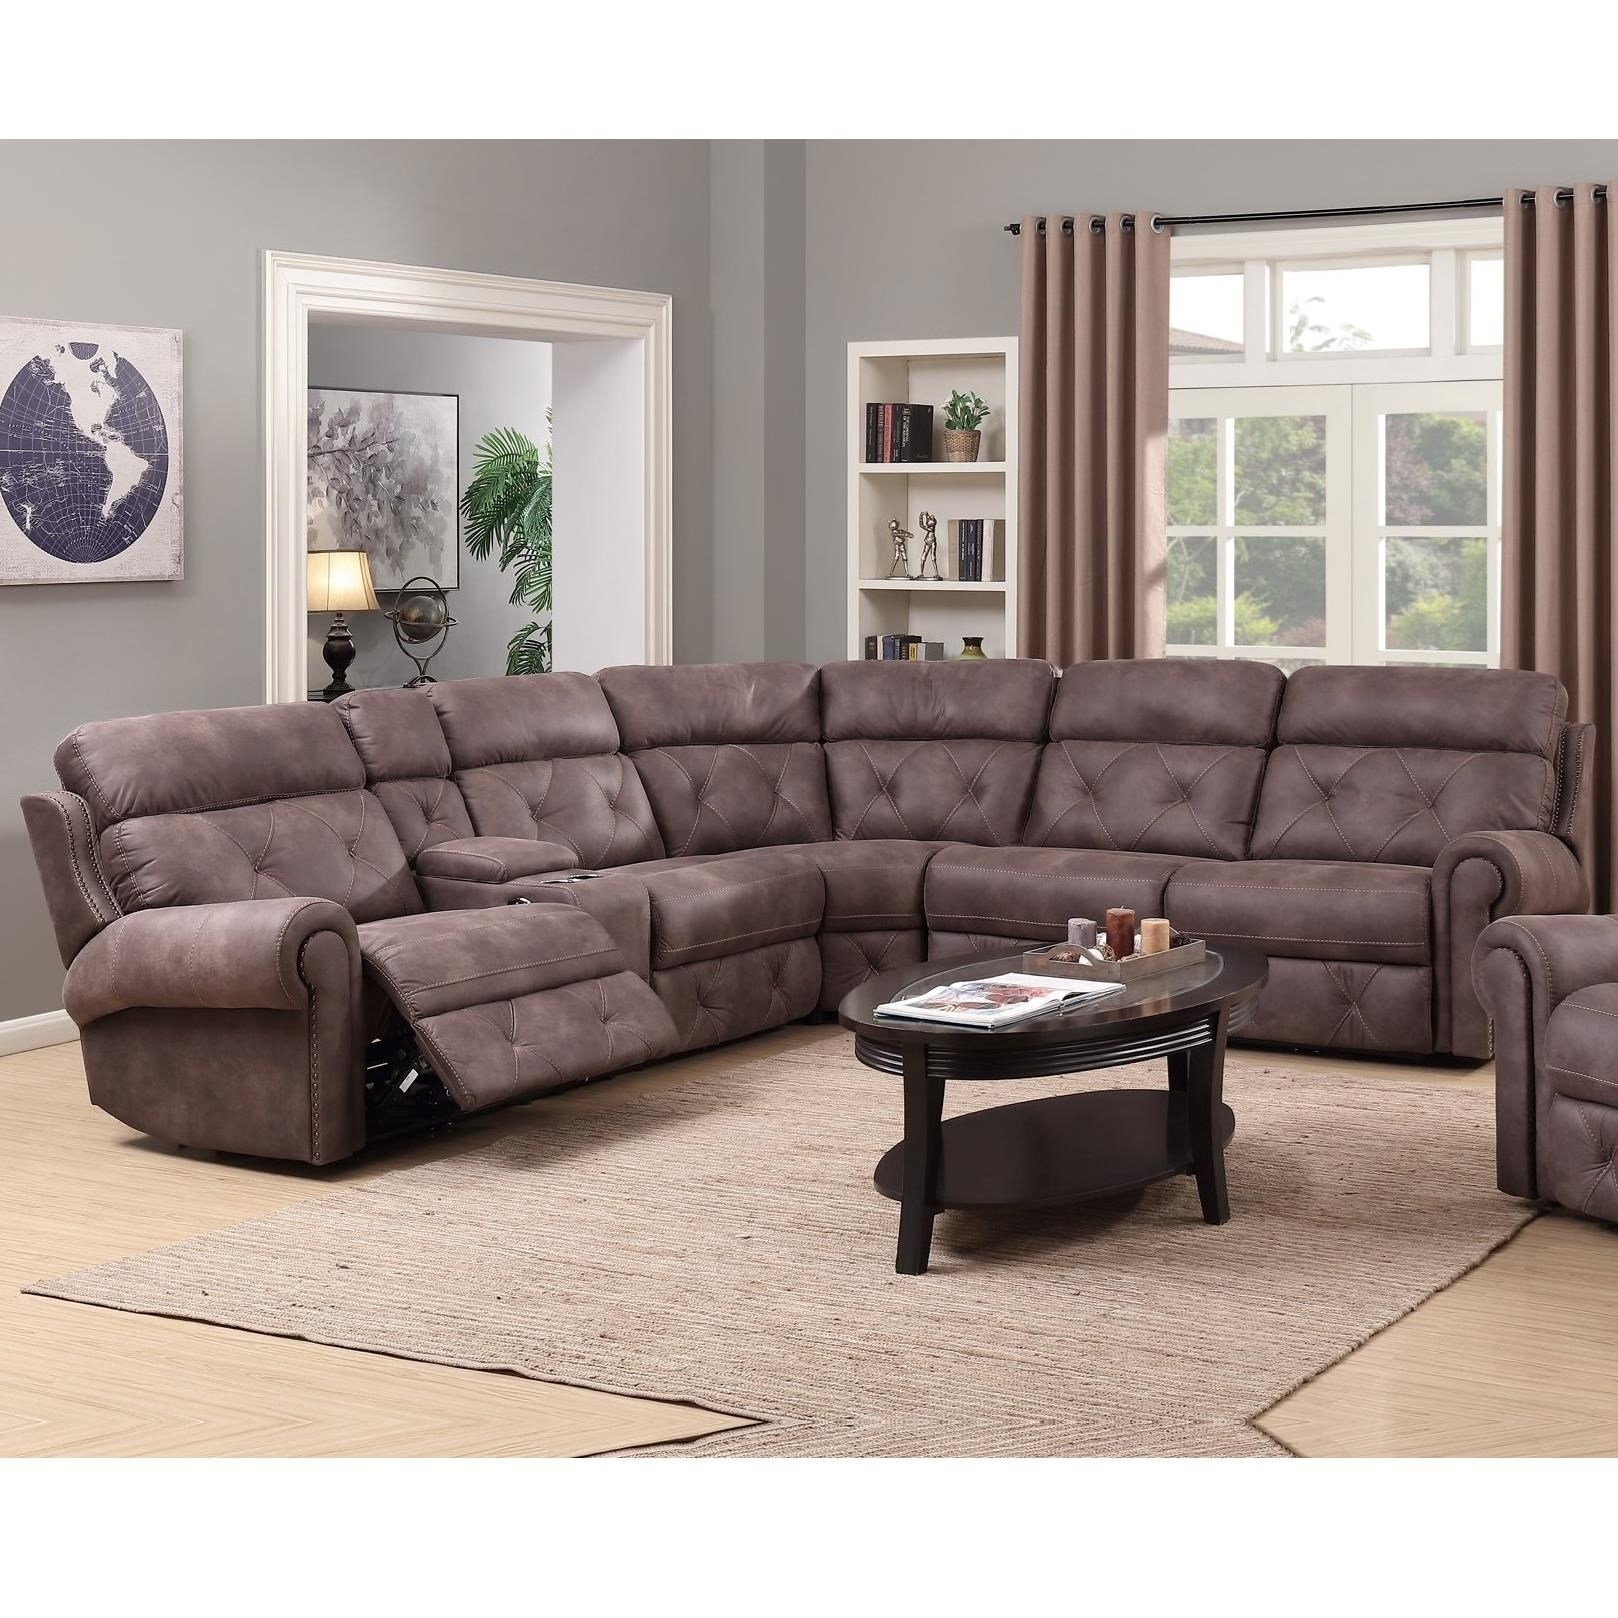 Sectional Sofas Birmingham Al: 10 Best Ideas Sectional Sofas At Birmingham Al